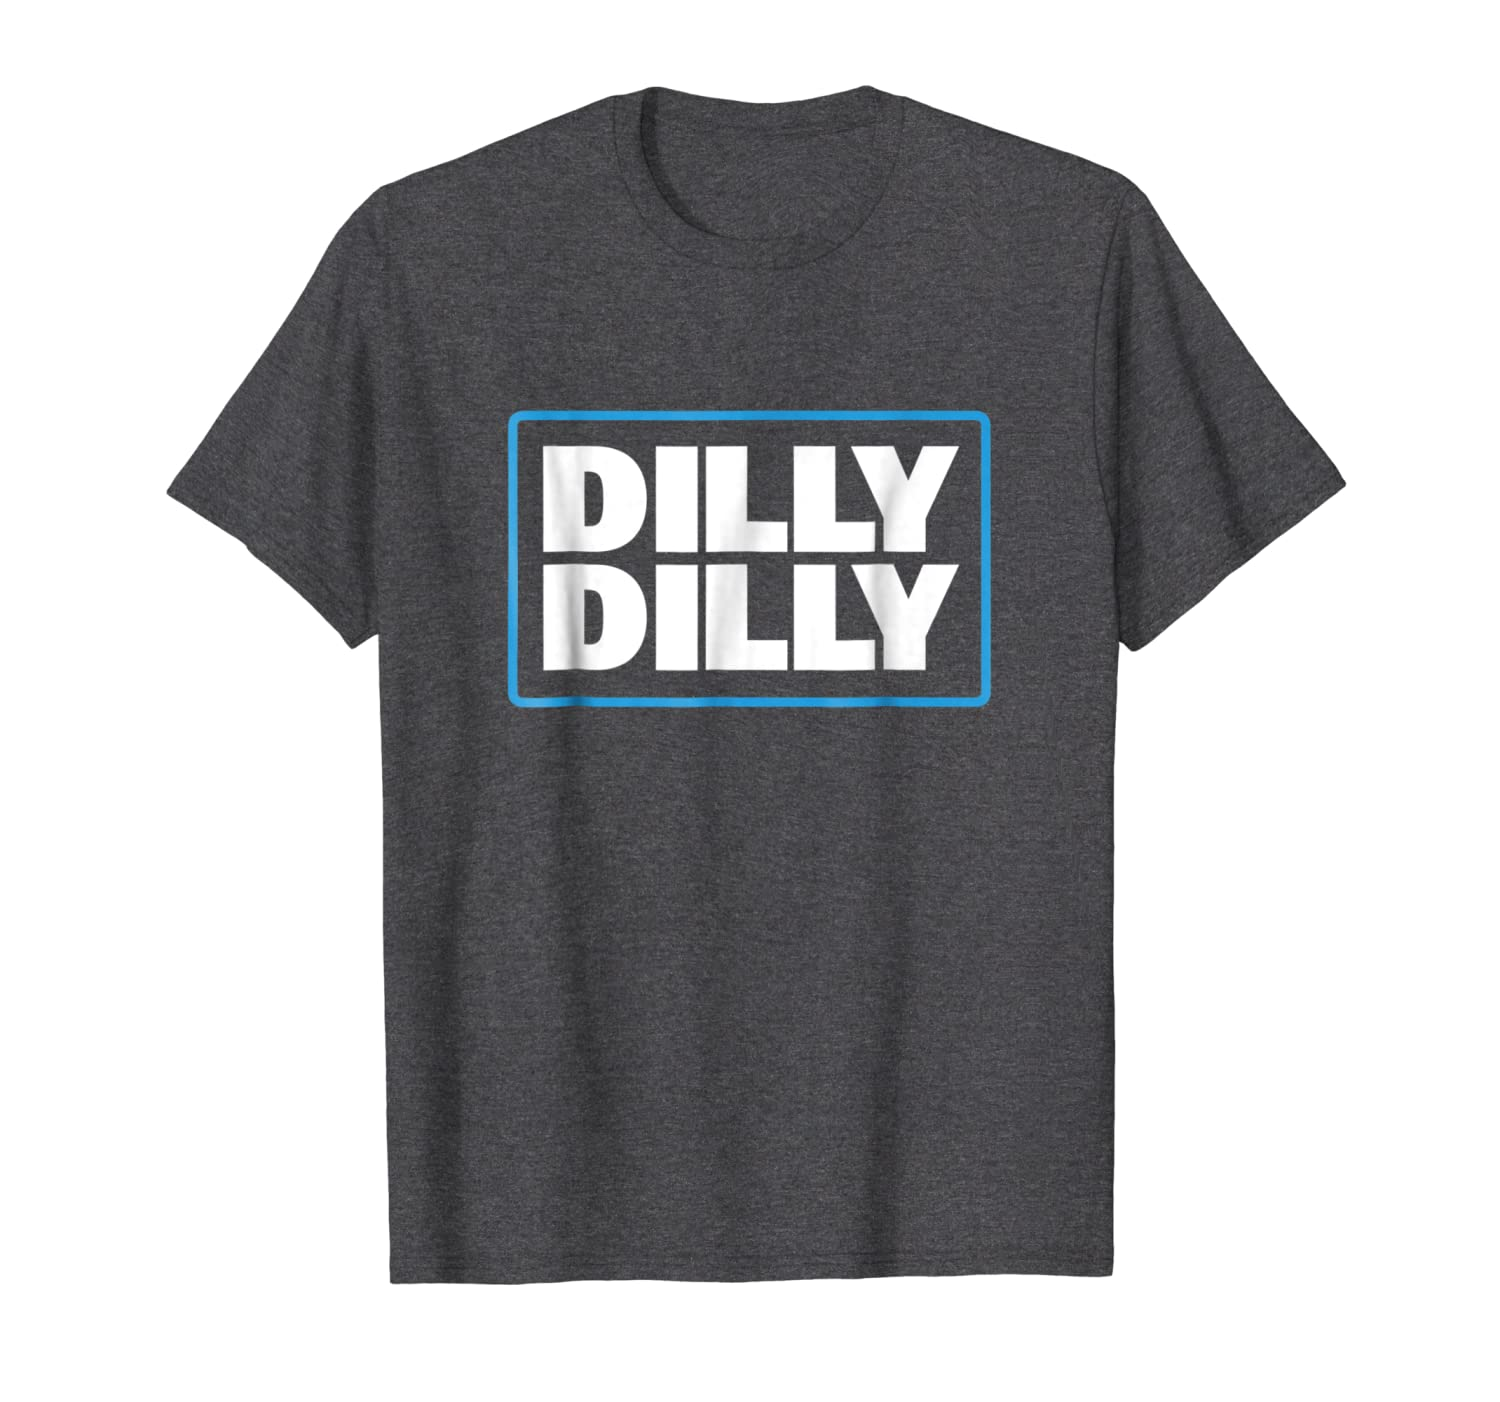 14584003 Amazon.com: Bud Light Official Dilly Dilly T-Shirt: Clothing